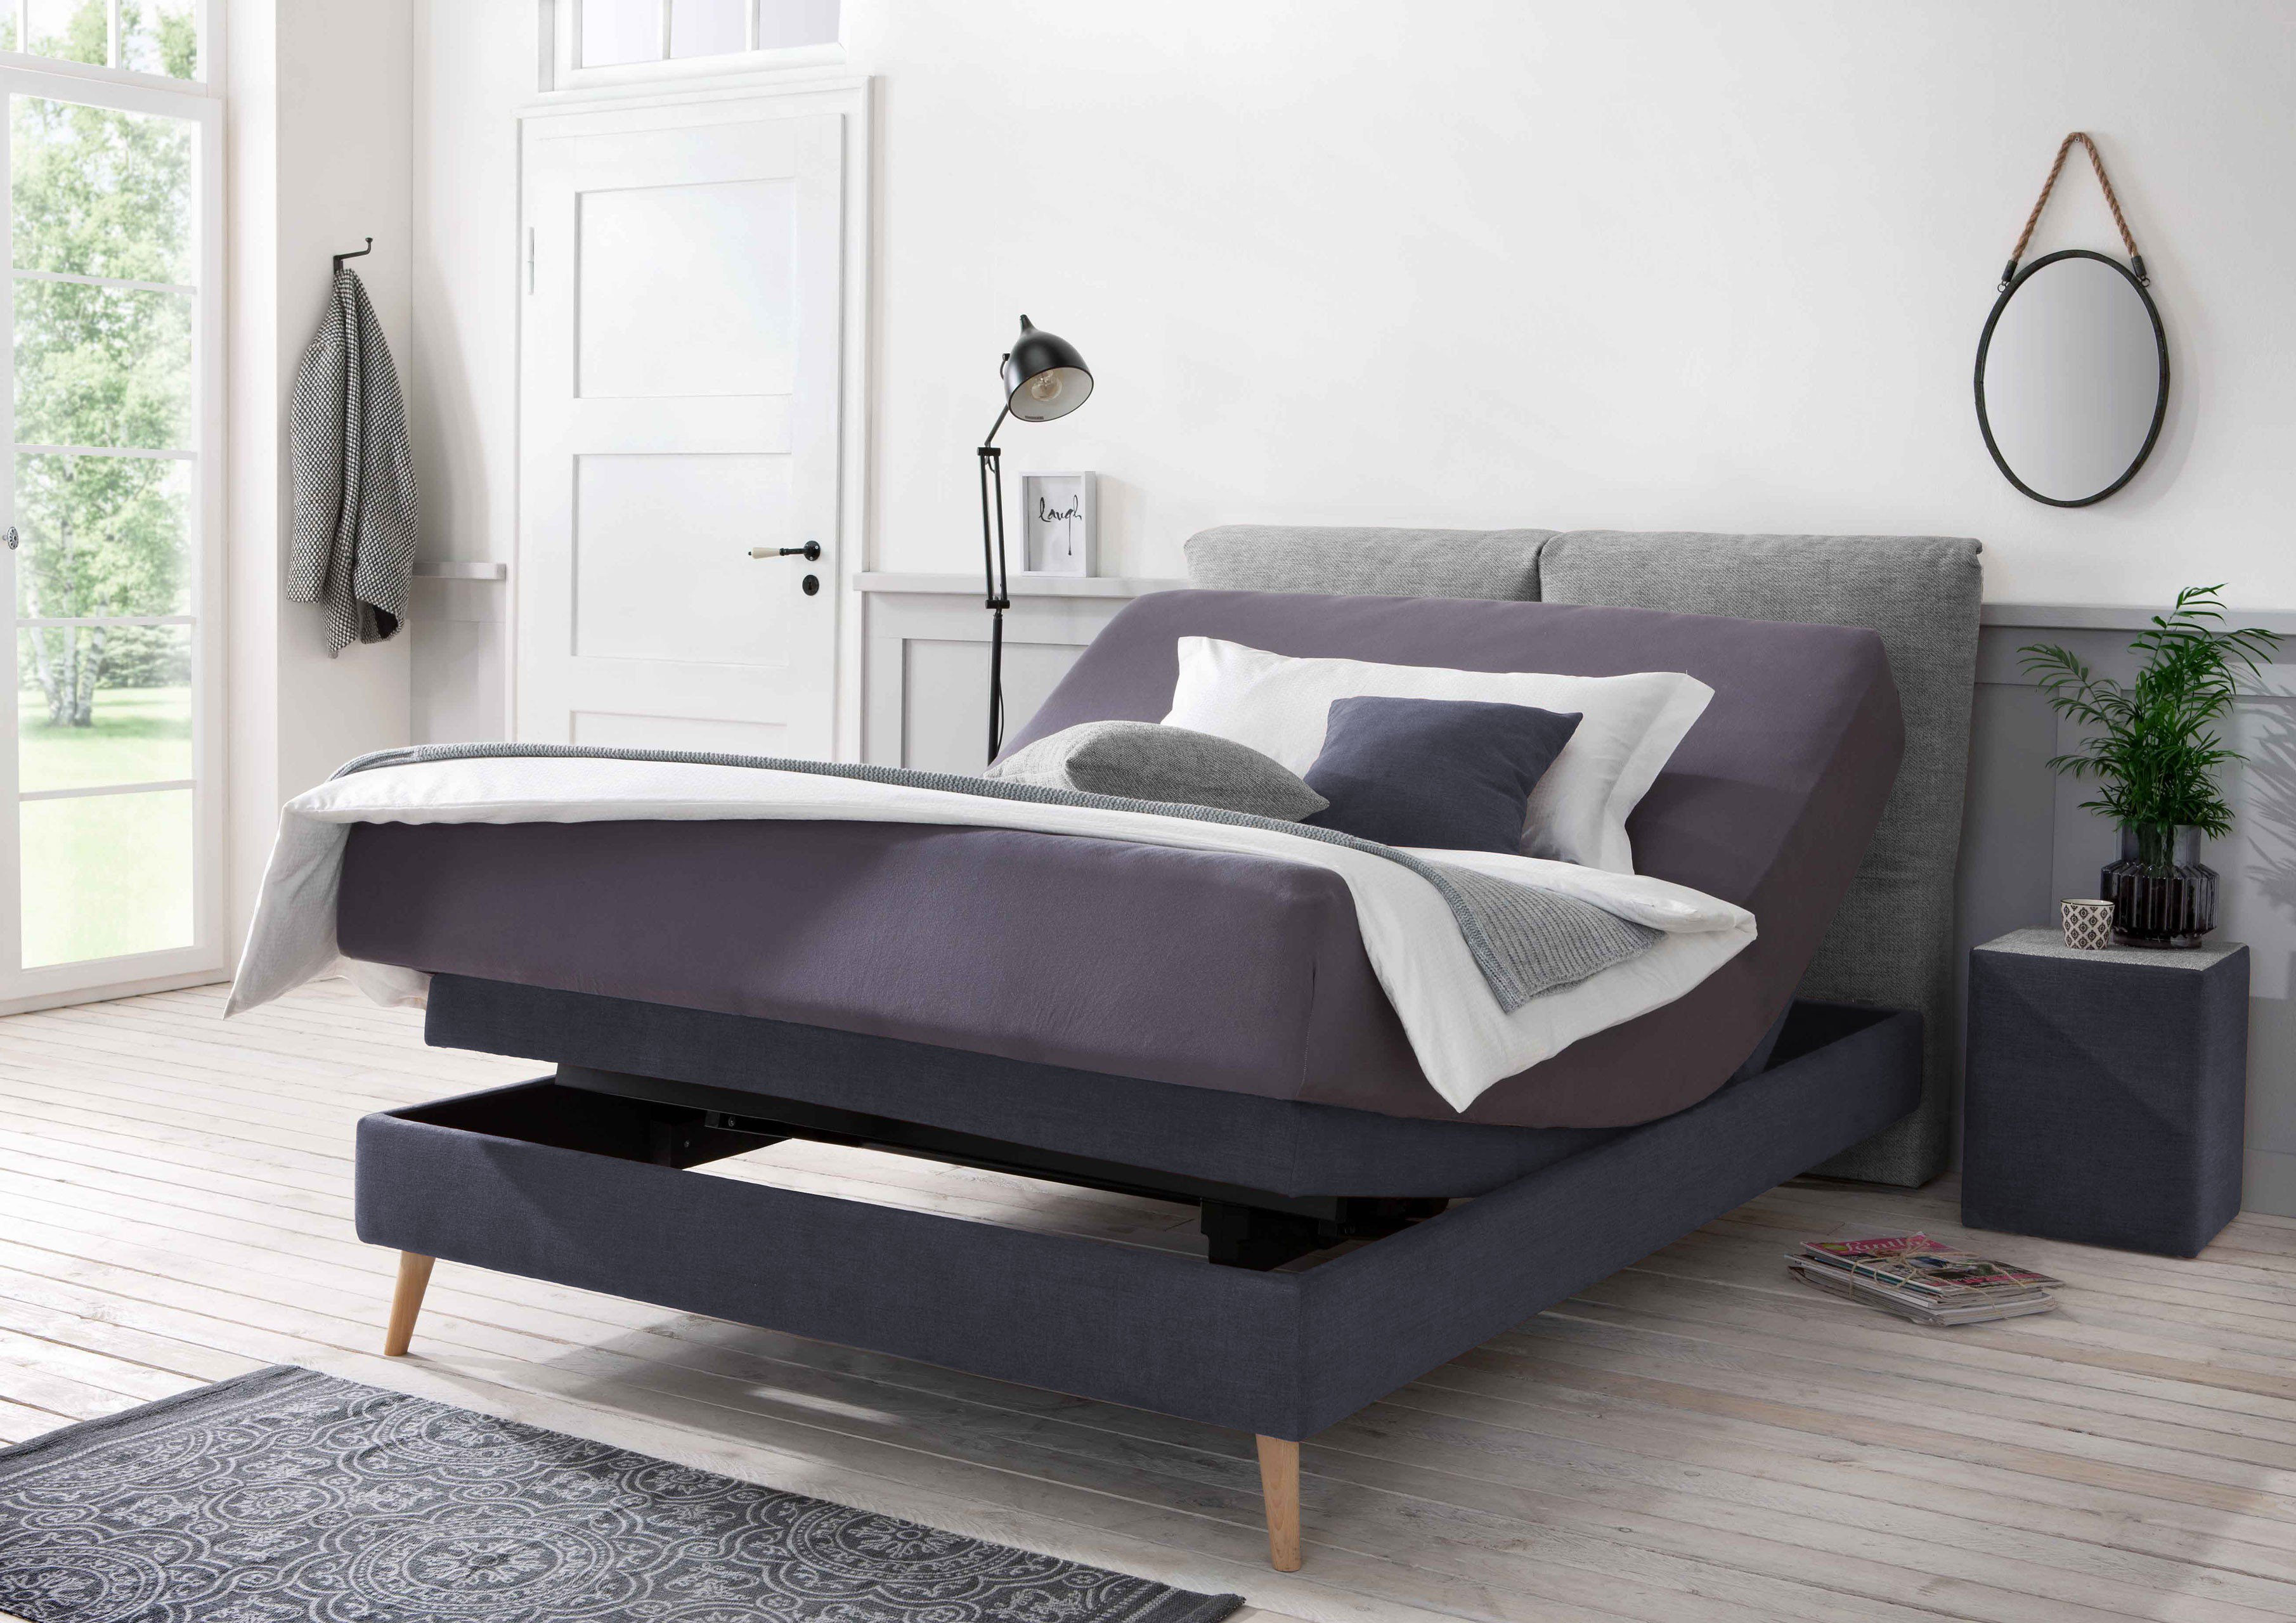 otten boxspringbett kapstadt in navy grau mit kopfteilkissen m bel letz ihr online shop. Black Bedroom Furniture Sets. Home Design Ideas